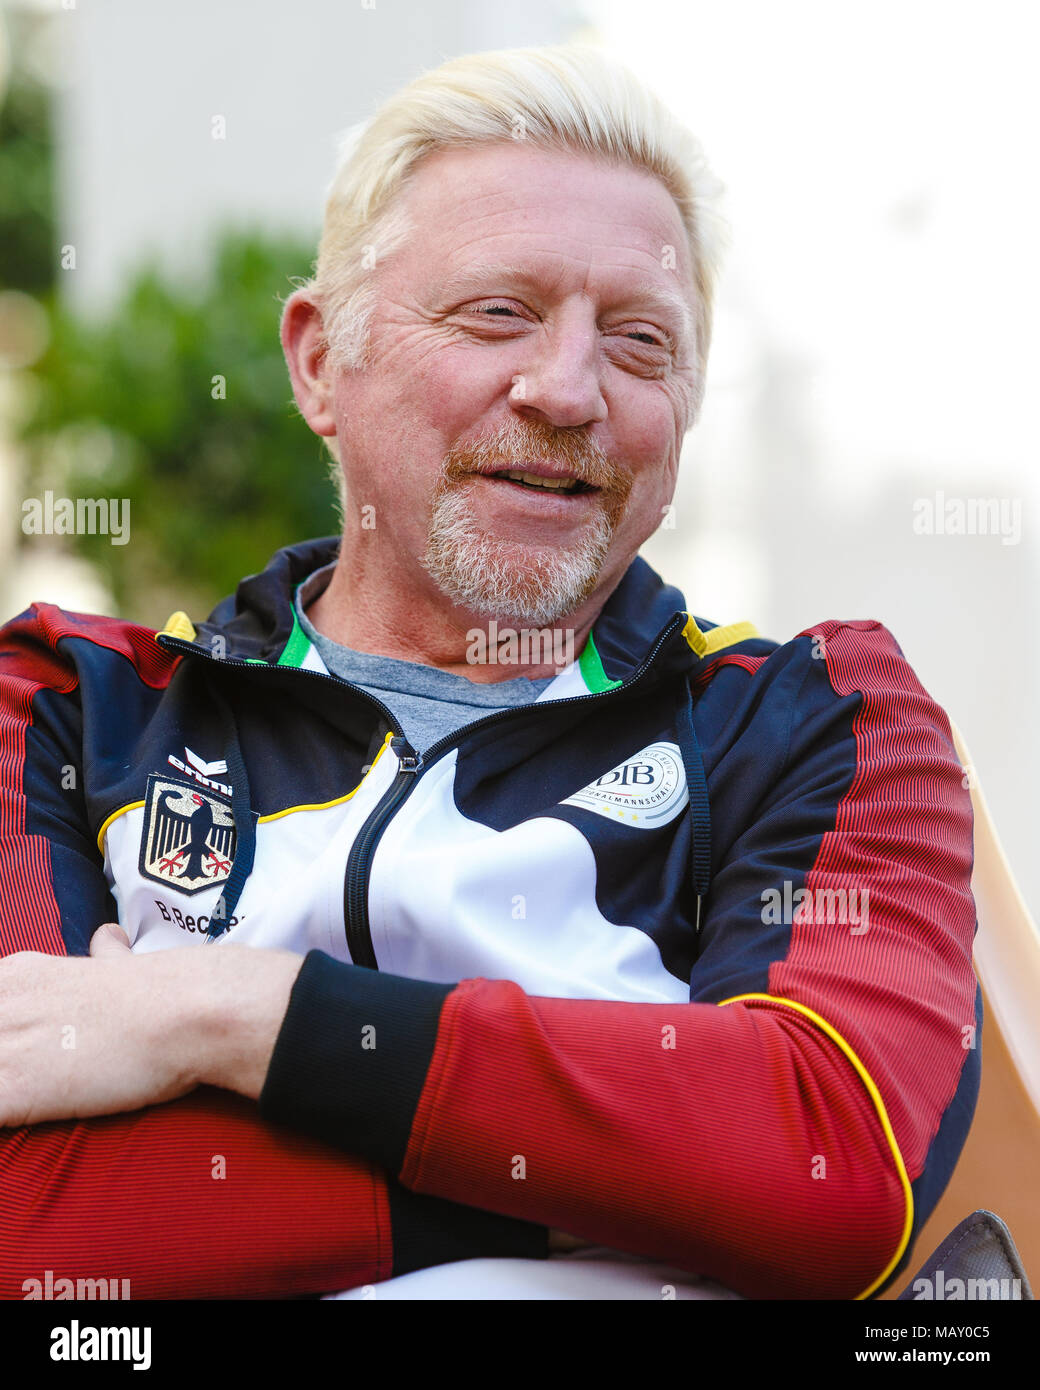 Valencia, Spain. 4th April, 2018. Germanys Head of men's tennis, Boris Becker, talks to the press before the Davis Cup Quarterfinal match between Spain and Germany at the Plaza de Torros. Credit: Frank Molter/Alamy Live News - Stock Image